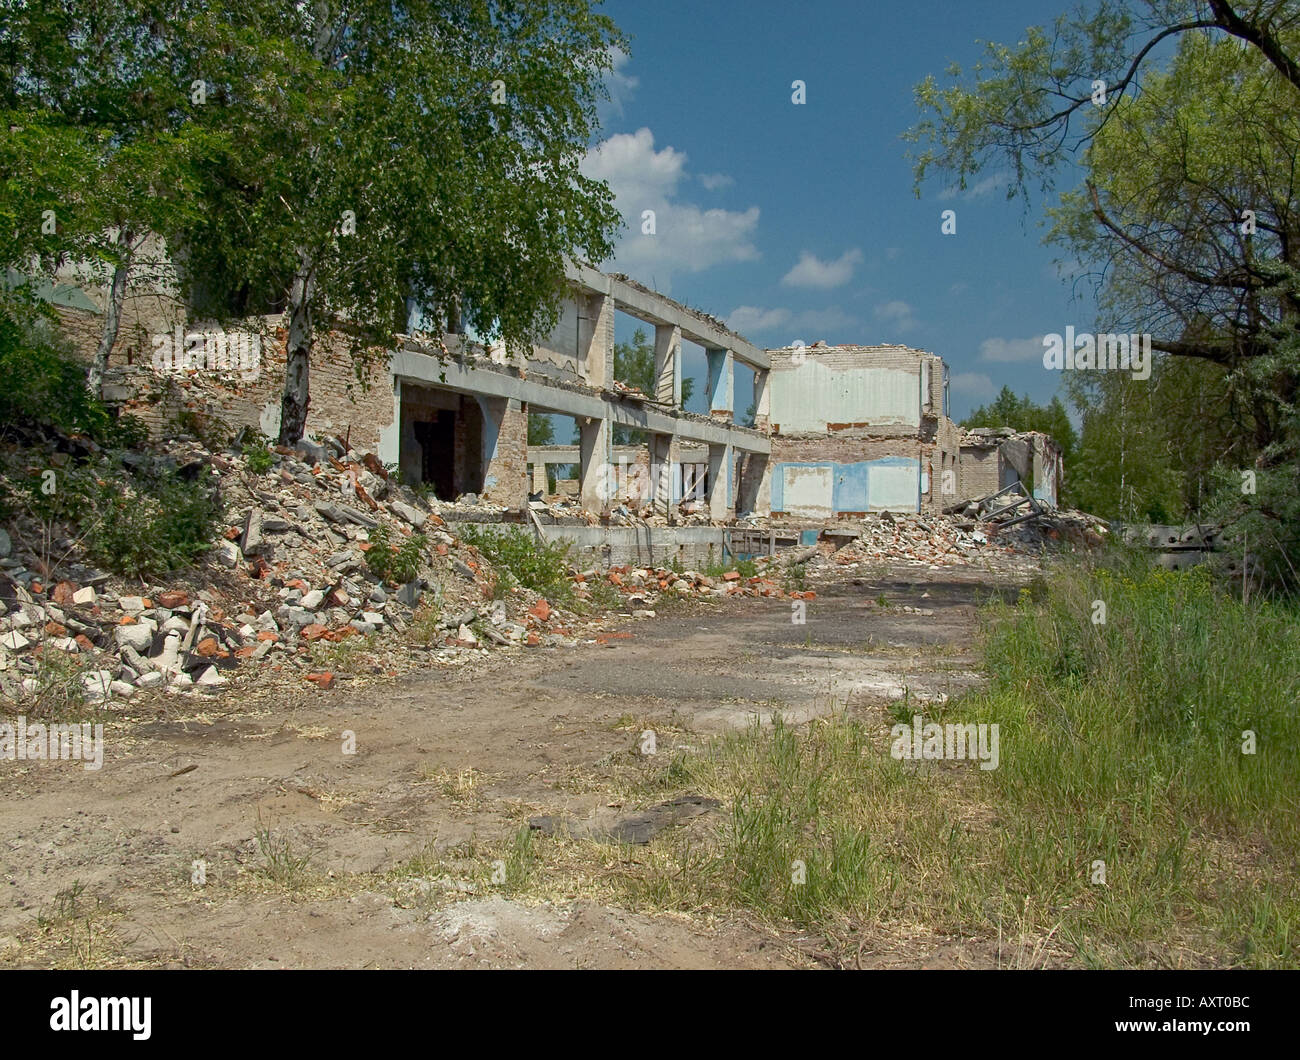 Street with abandoned derelict decaying buildings, collapsed window frame amidst rubble, trees, Chernobyl exclusion zone, Belarus Ukraine state border - Stock Image